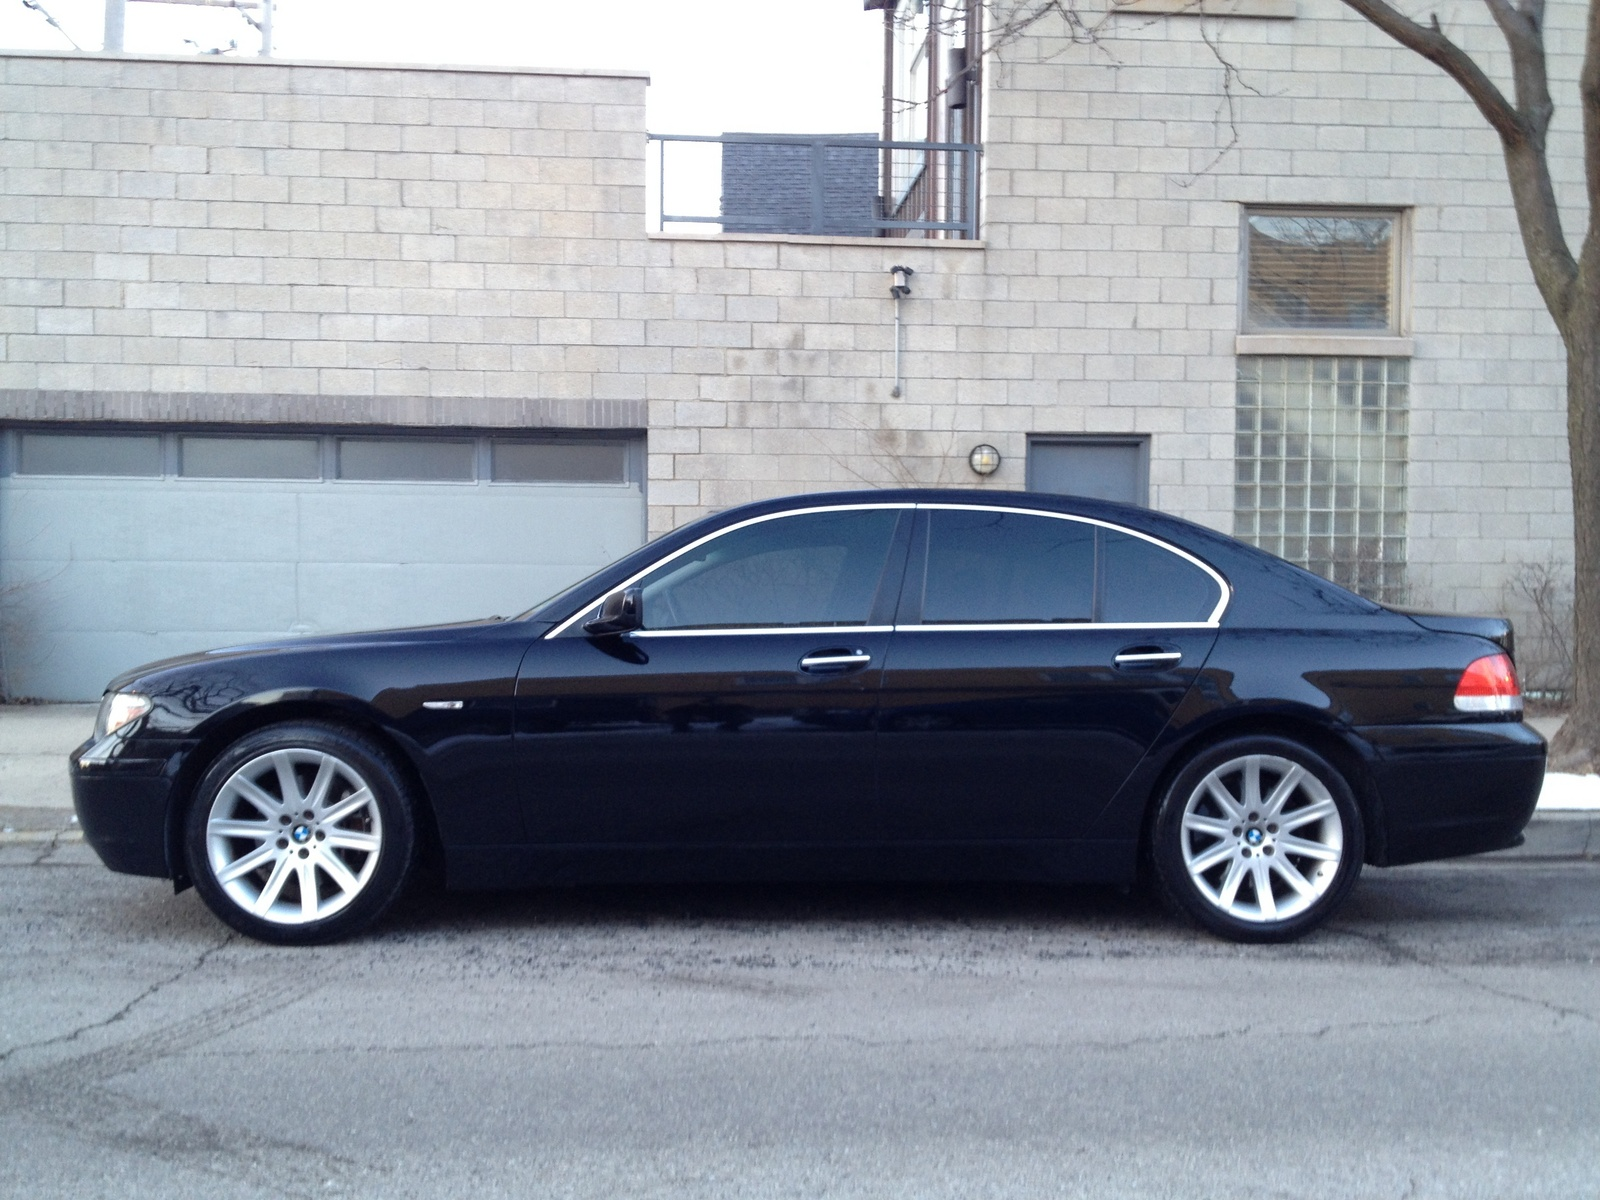 BMW 7 series 735i 2005 photo - 8